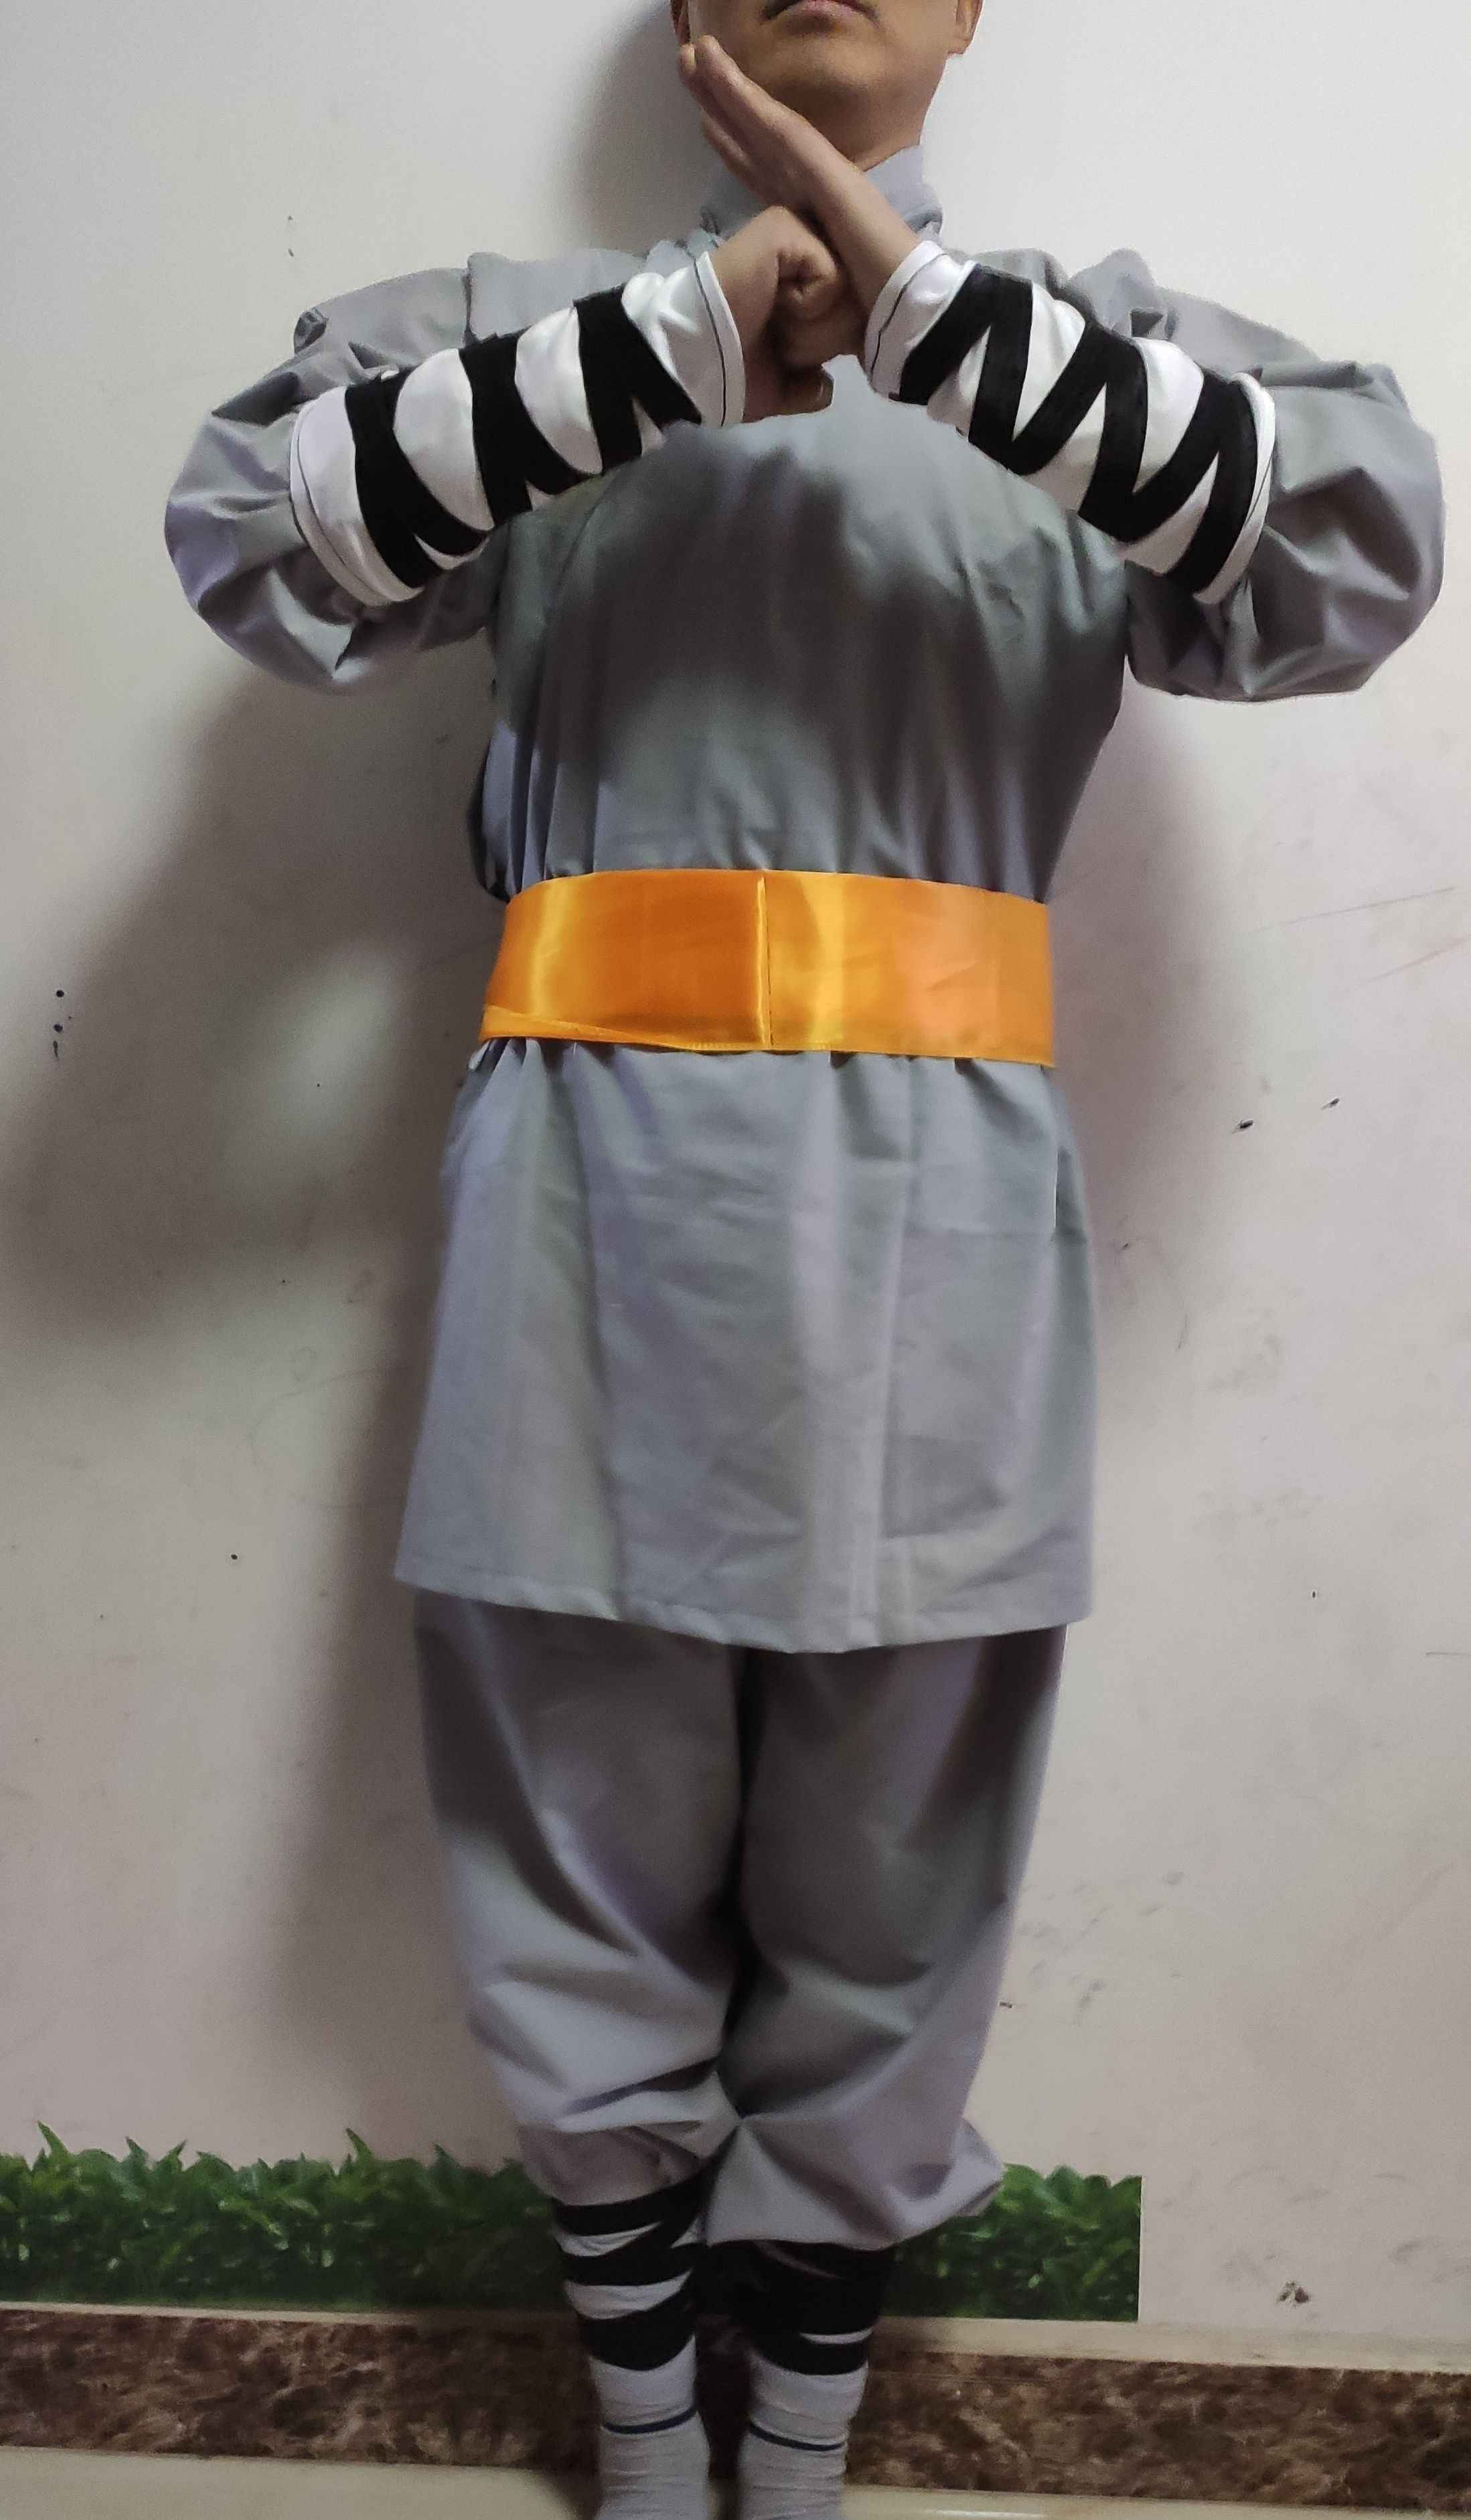 unisex Kids&adult cotton shaolin abbot monks kung fu exercise suits clothing sets Martial arts uniforms gray 5pcs/set